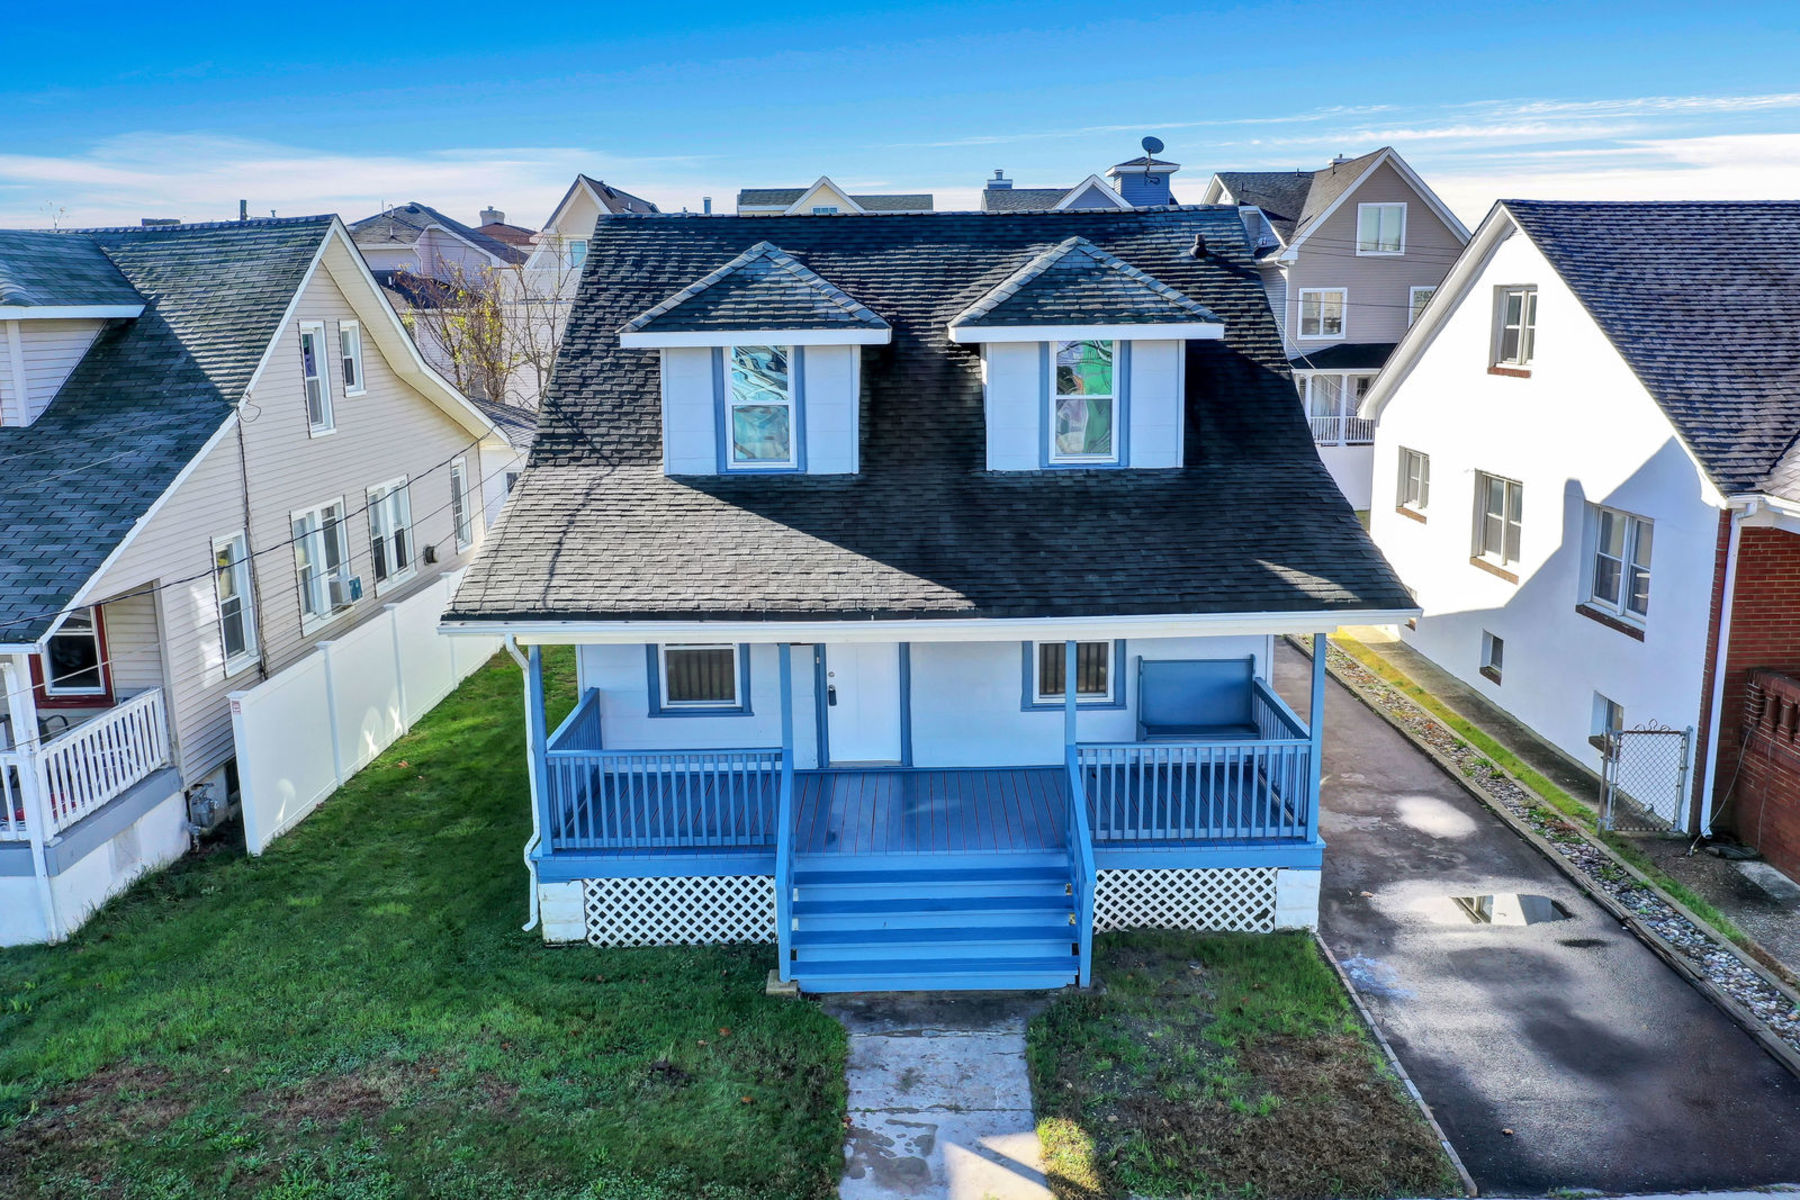 Single Family Home for Sale at Classic Shore Colonial 105 13th Ave, Belmar, New Jersey 07719 United States